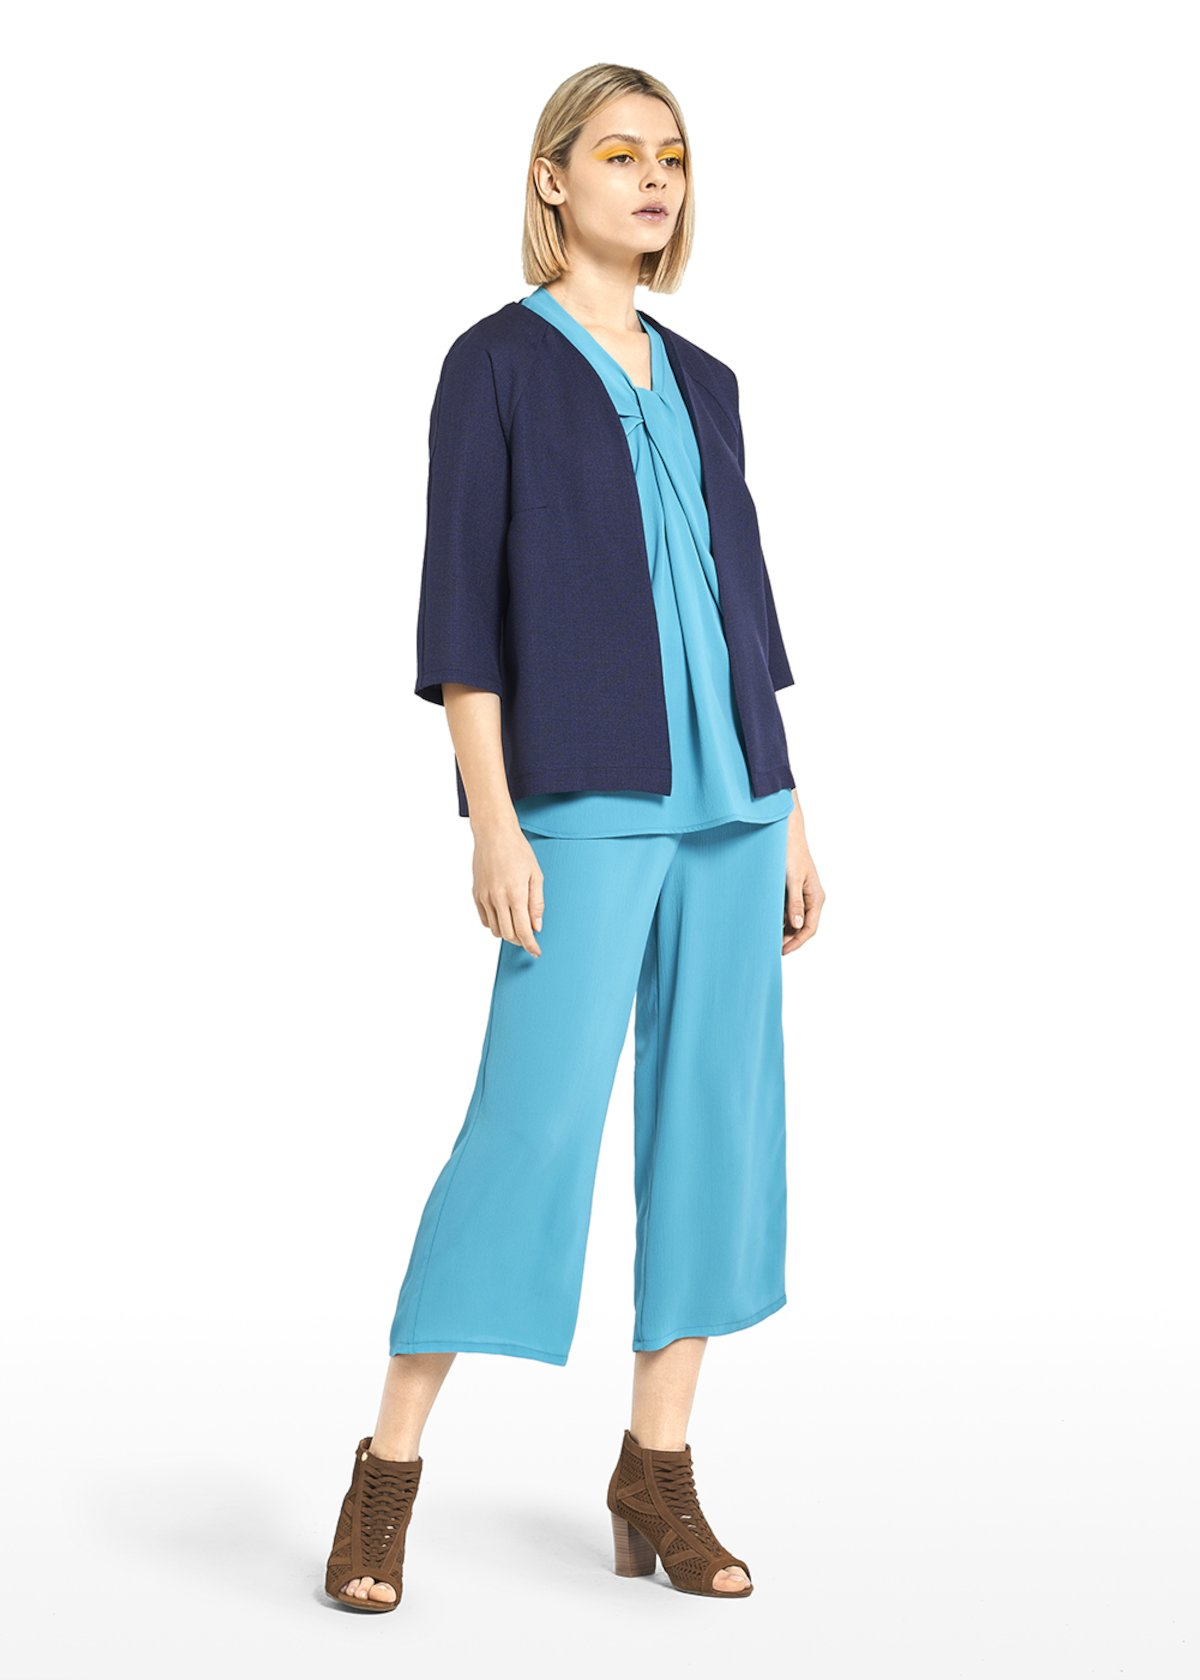 Cesar Mat shrug - Medium Blue - Woman